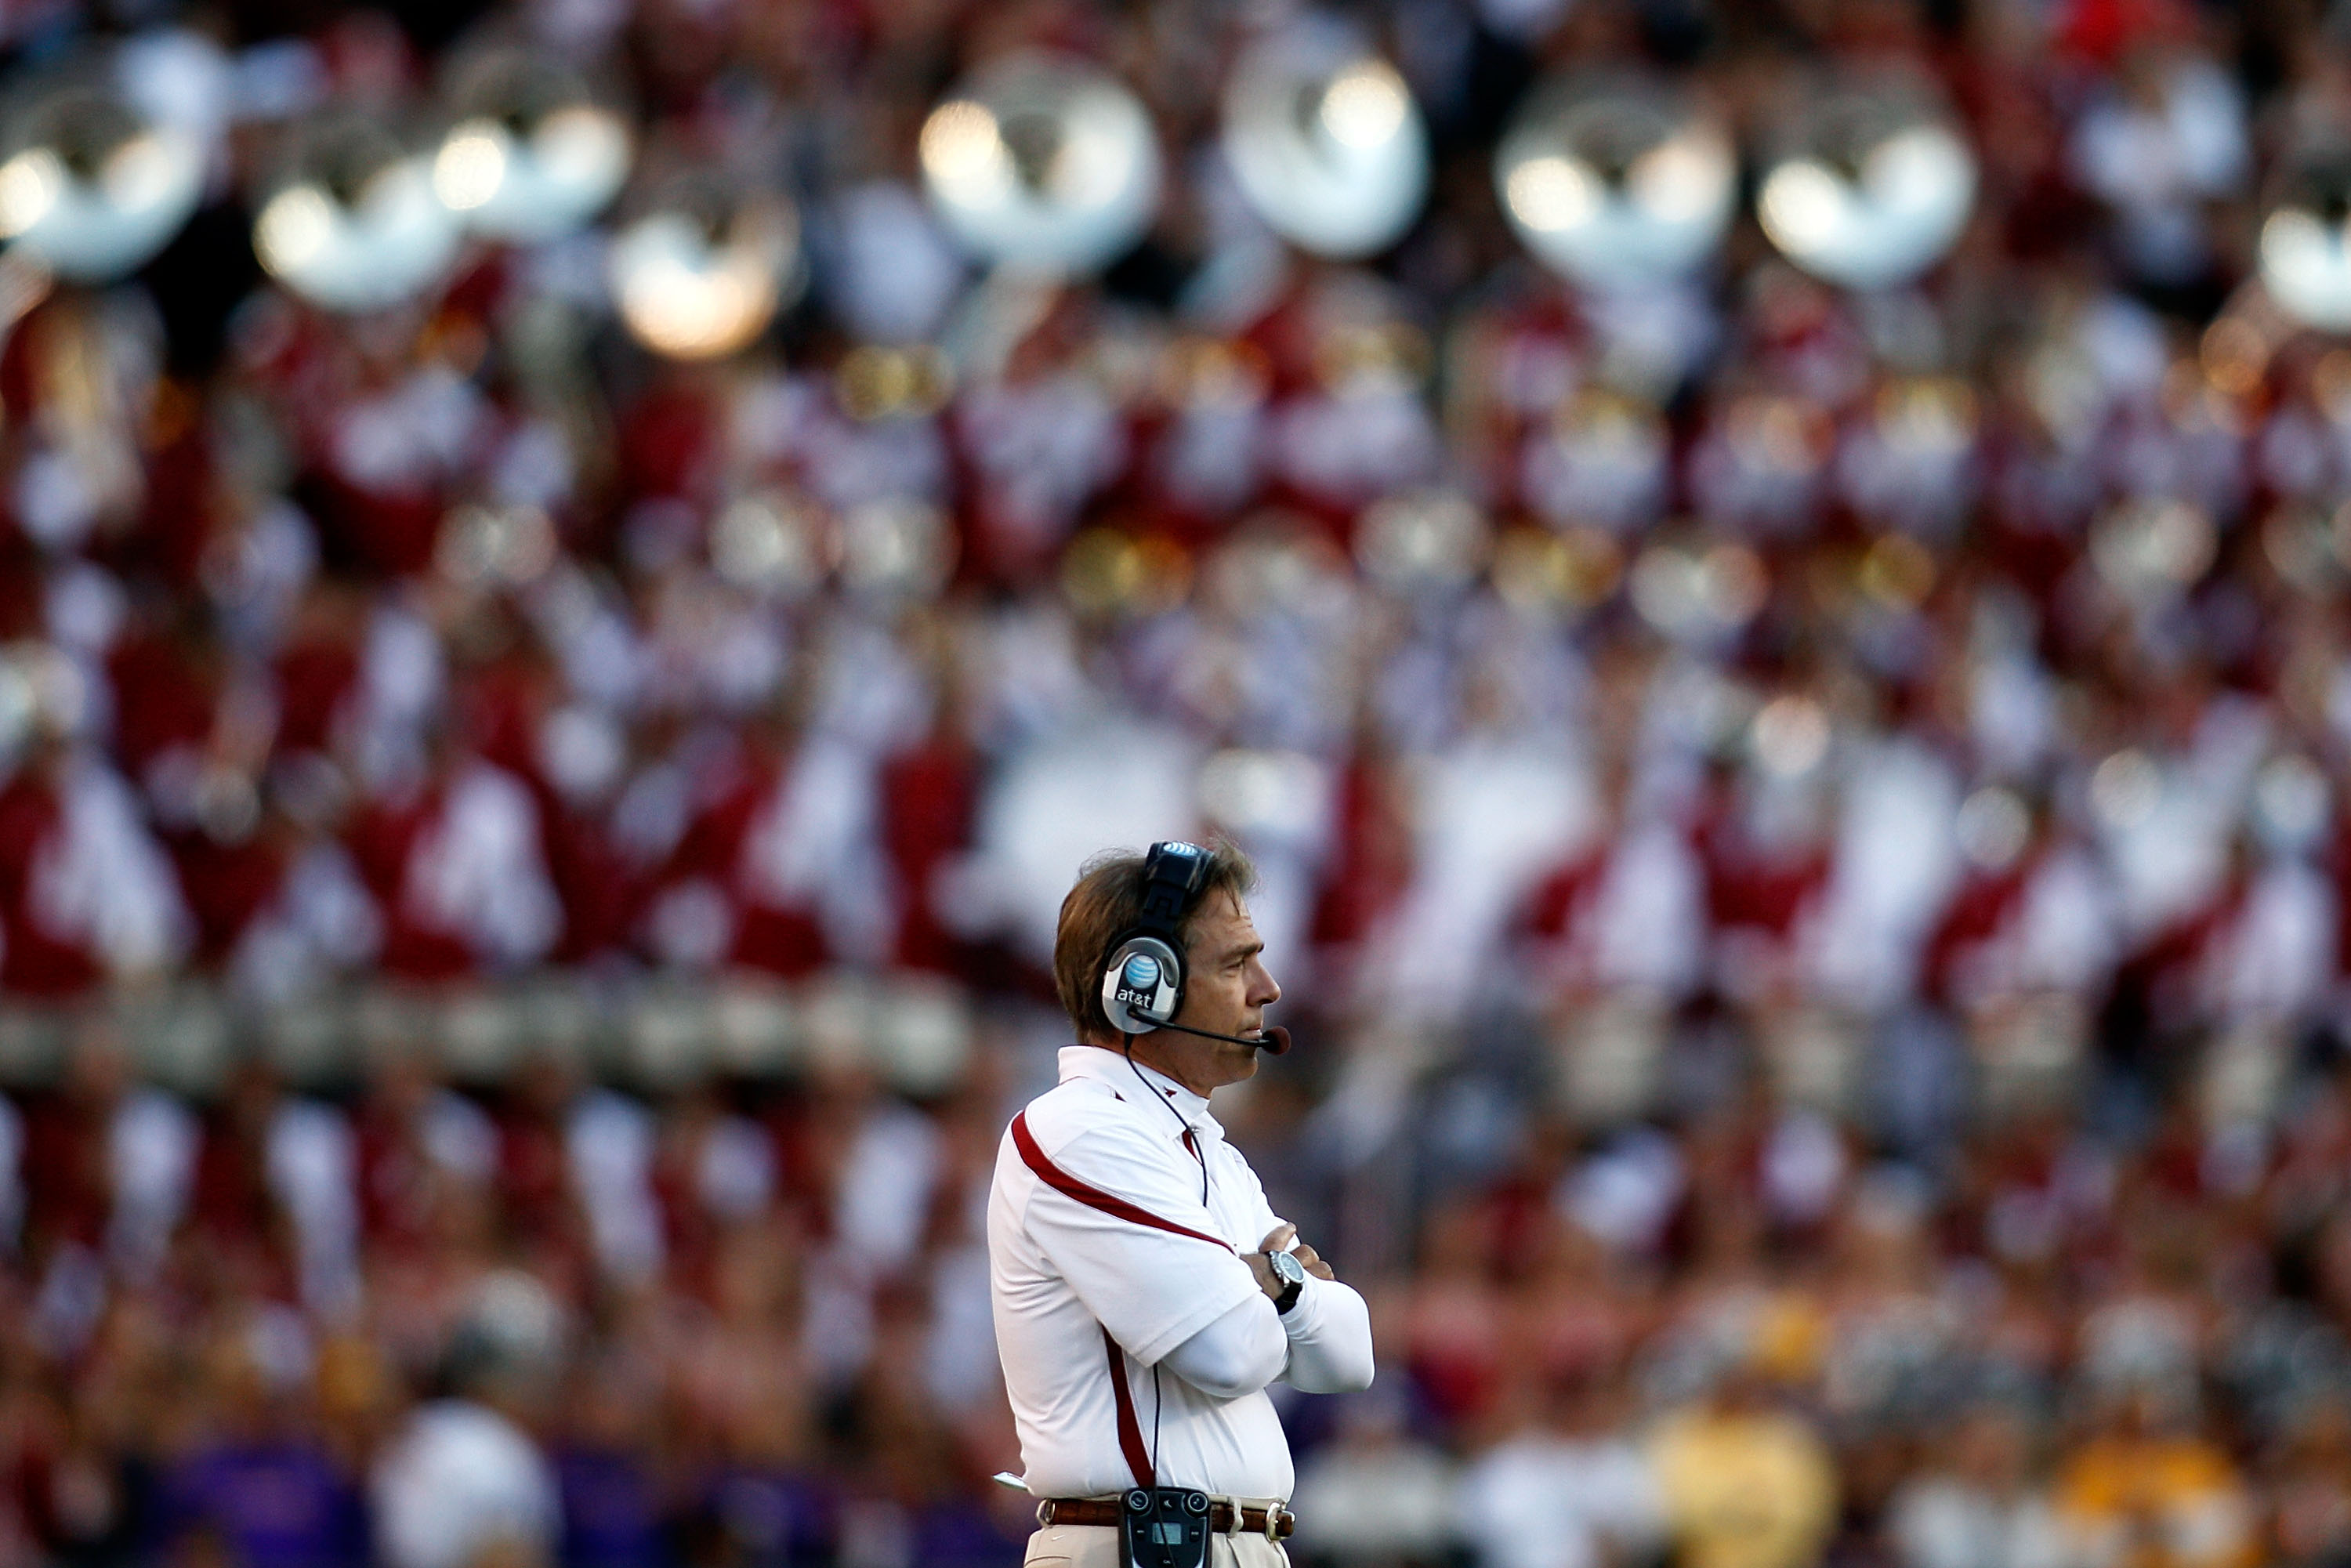 BATON ROUGE, LA - NOVEMBER 06:  Head coach Nick Saban of the Alabama Crimson Tide watches a play during the game against the Louisiana State University Tigers at Tiger Stadium on November 6, 2010 in Baton Rouge, Louisiana. The Tigers defeated the Crimson